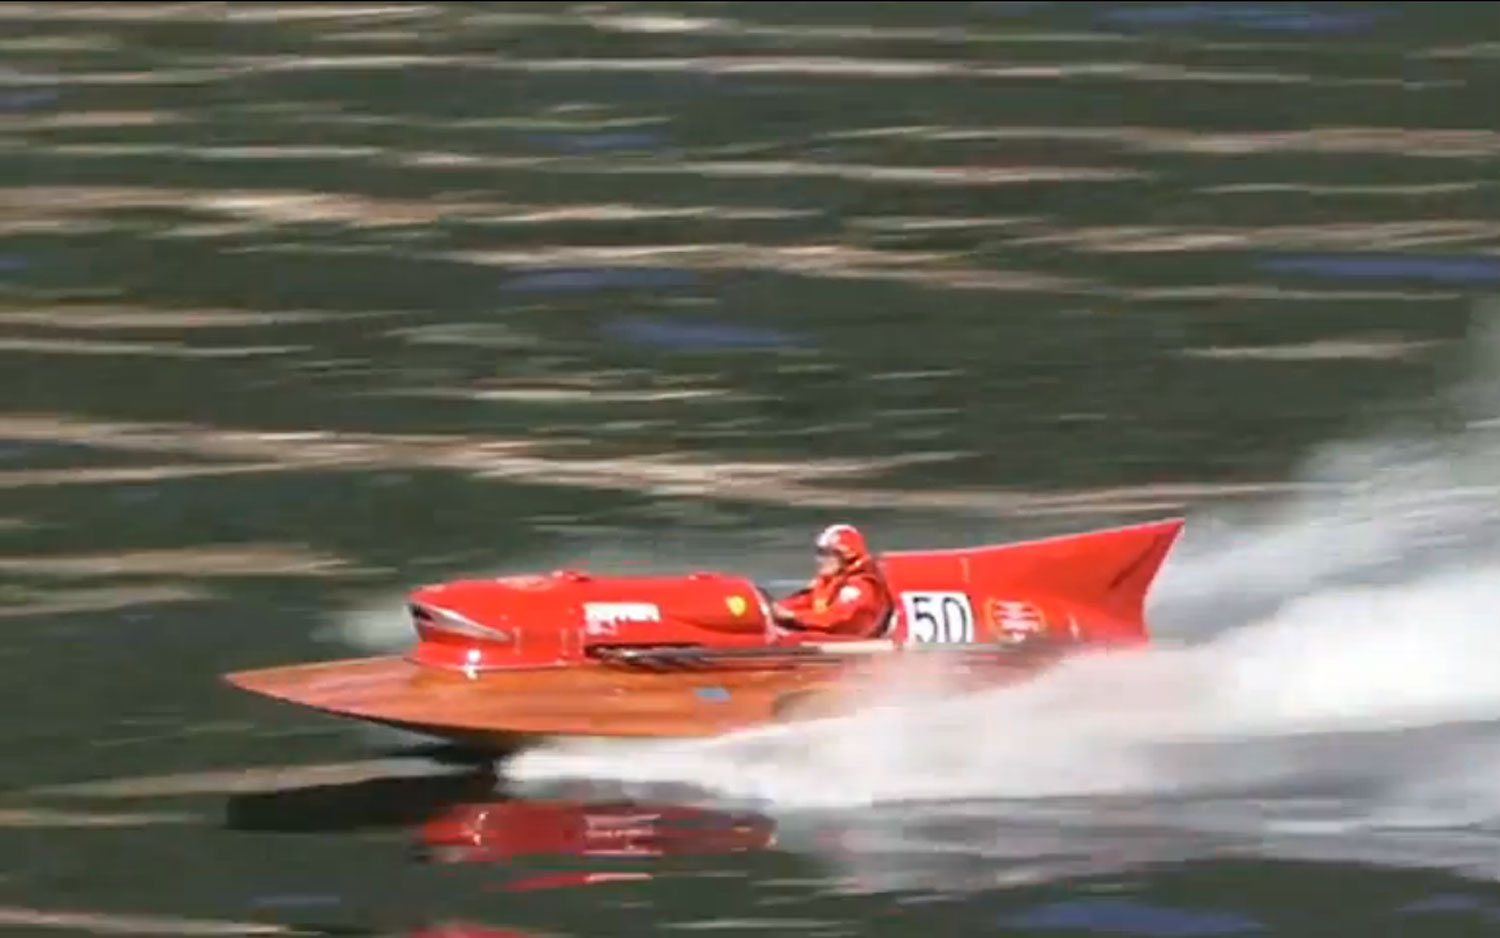 1953 Timossi Ferrari Arno XI Racing Hydroplane Video 41